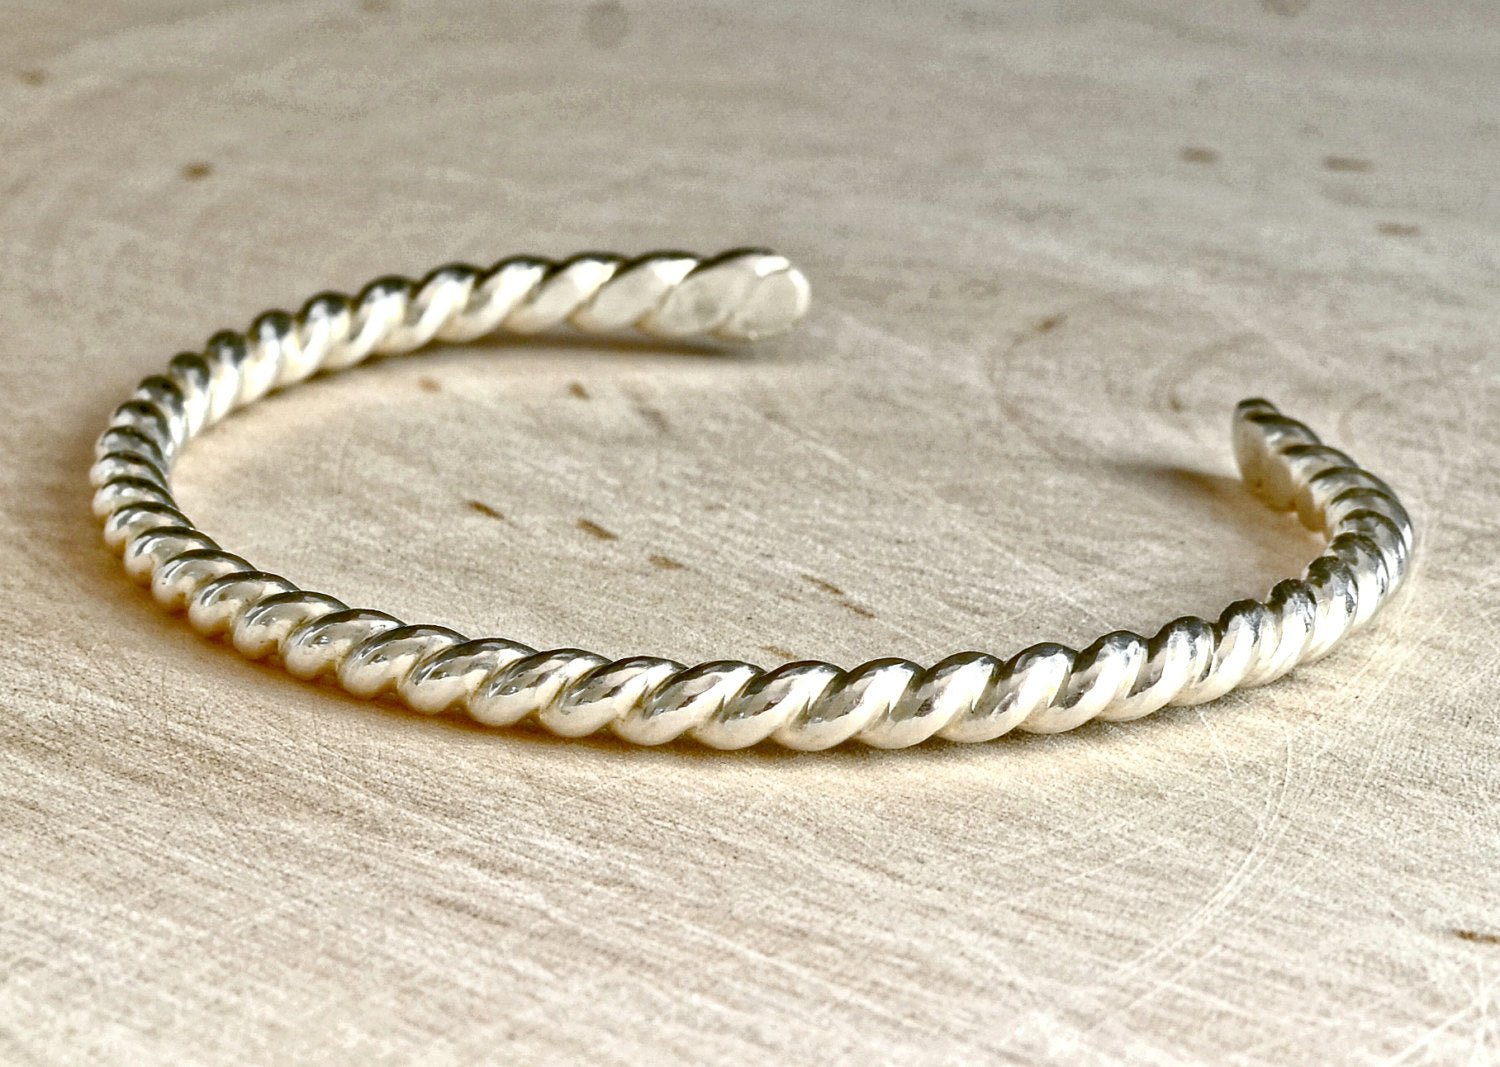 Twisted Sterling Silver Wire Cuff Bracelet - NiciArt